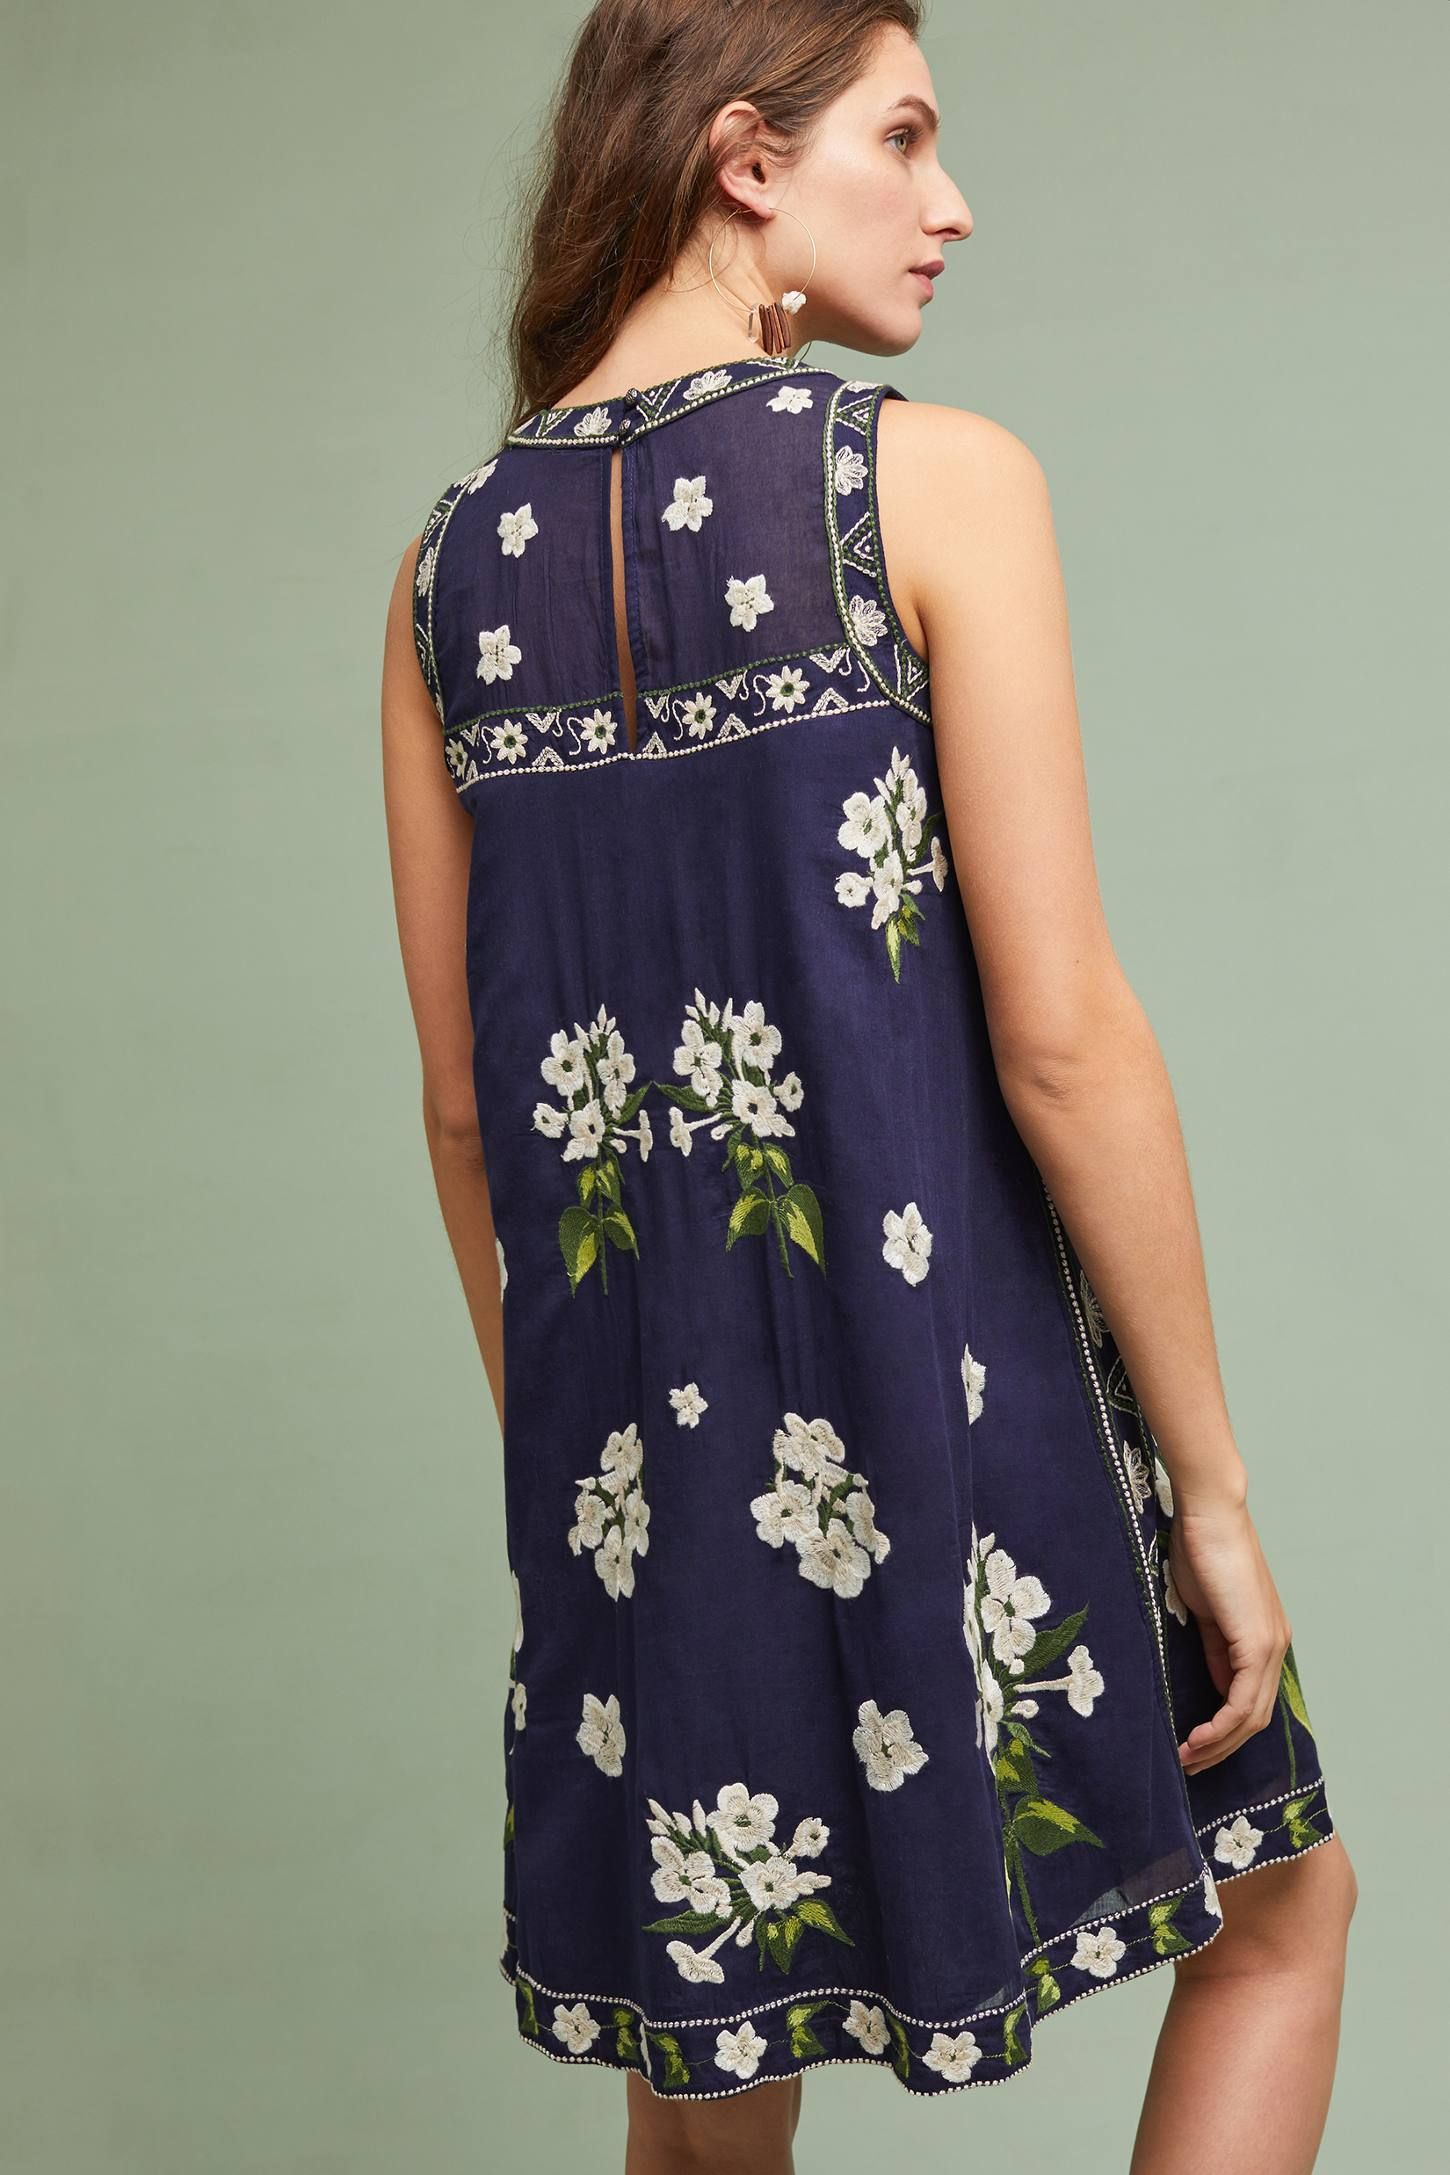 ... SAN MARCO EMBROIDERED SWING DRESS ...